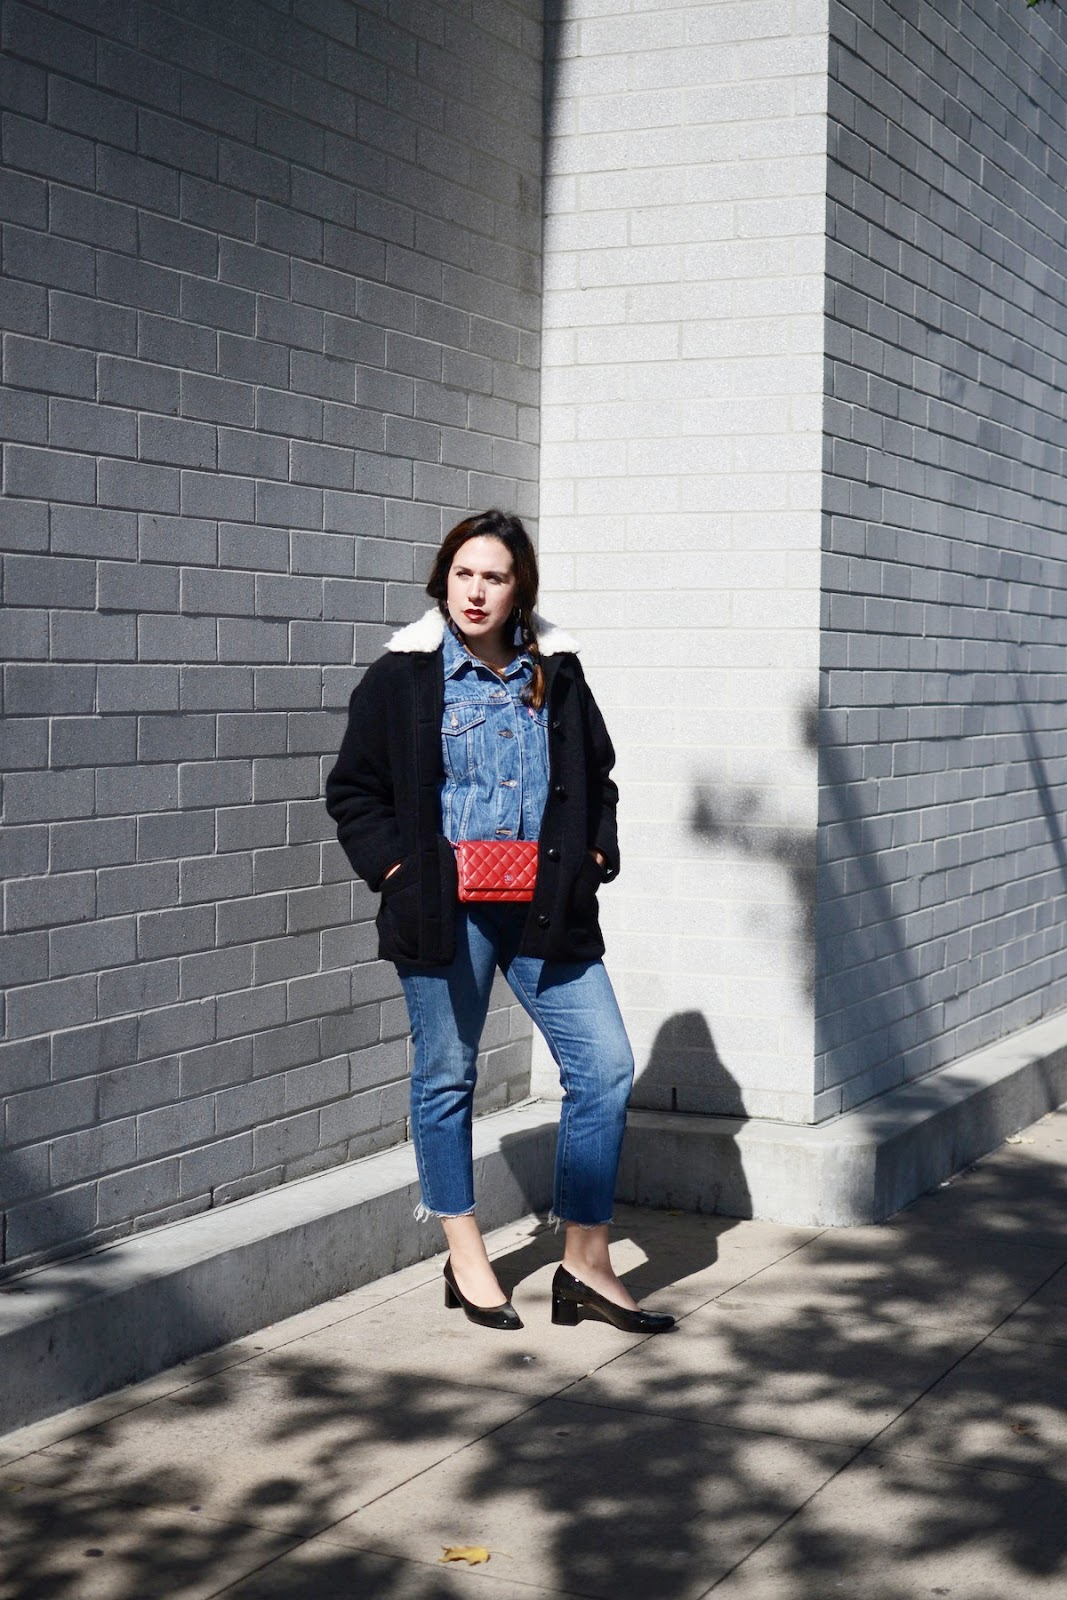 Levis jean jacket levis wedgie jean canadian tuxedo Geox patent leather low heels vancouver blogger outfit 12